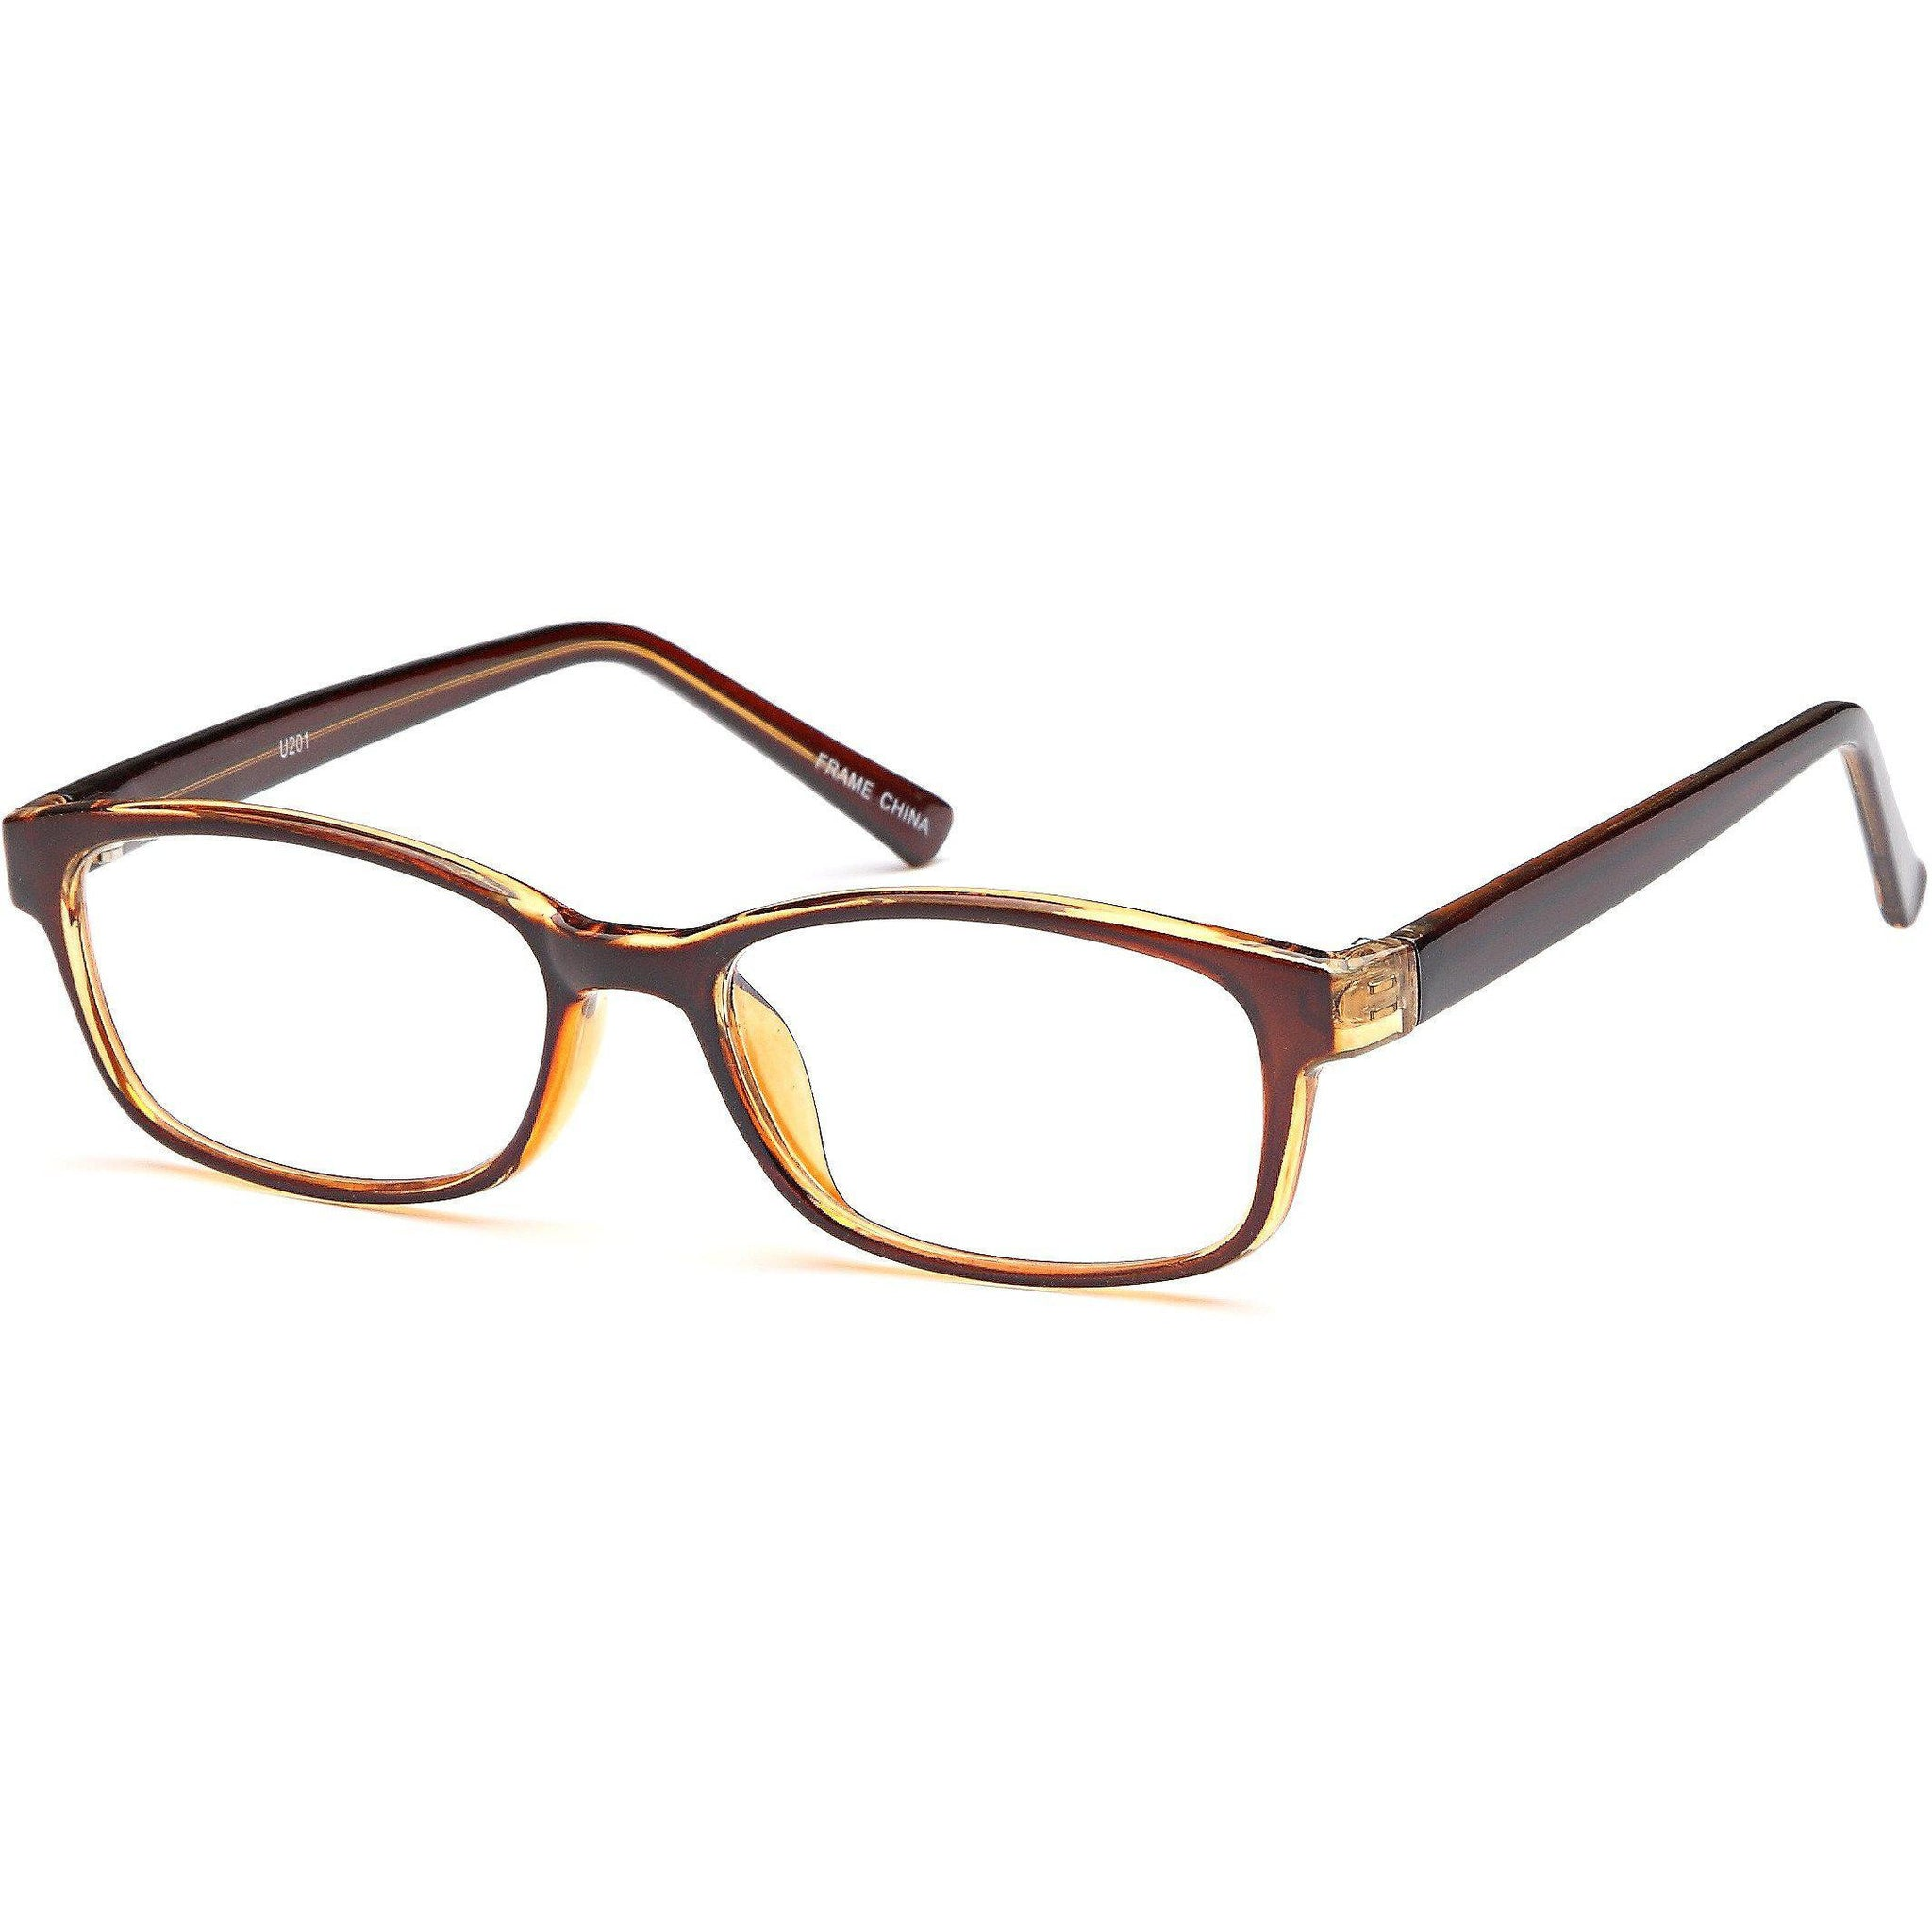 Hampstead by The Square Mile Round Eyeglasses Frame - timetoshade